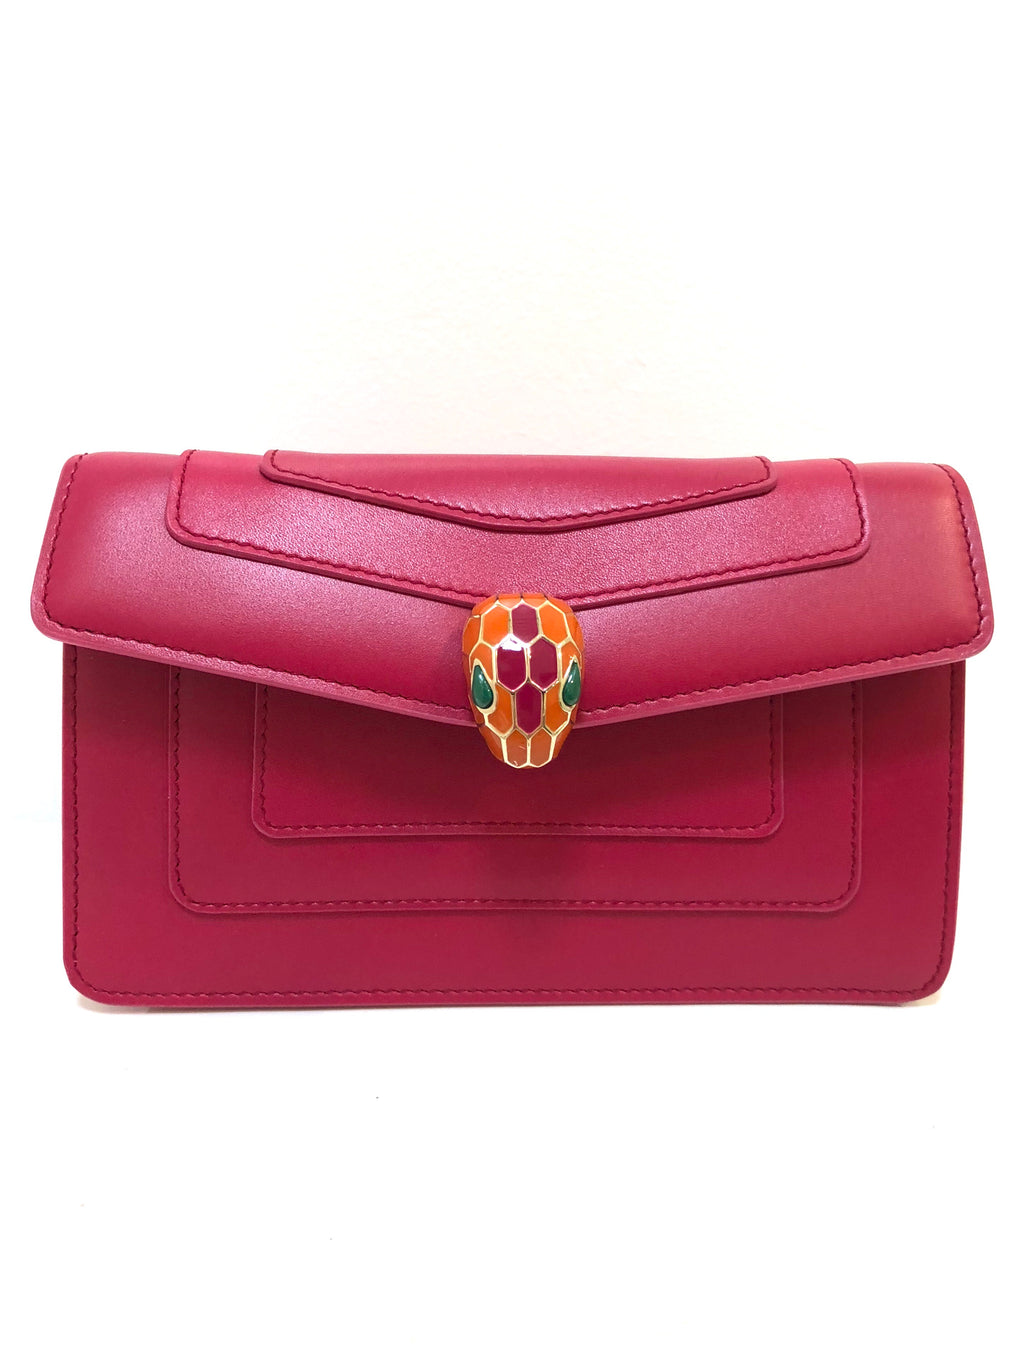 Bvlgari Pink Forever Serpenti Clutch Bag